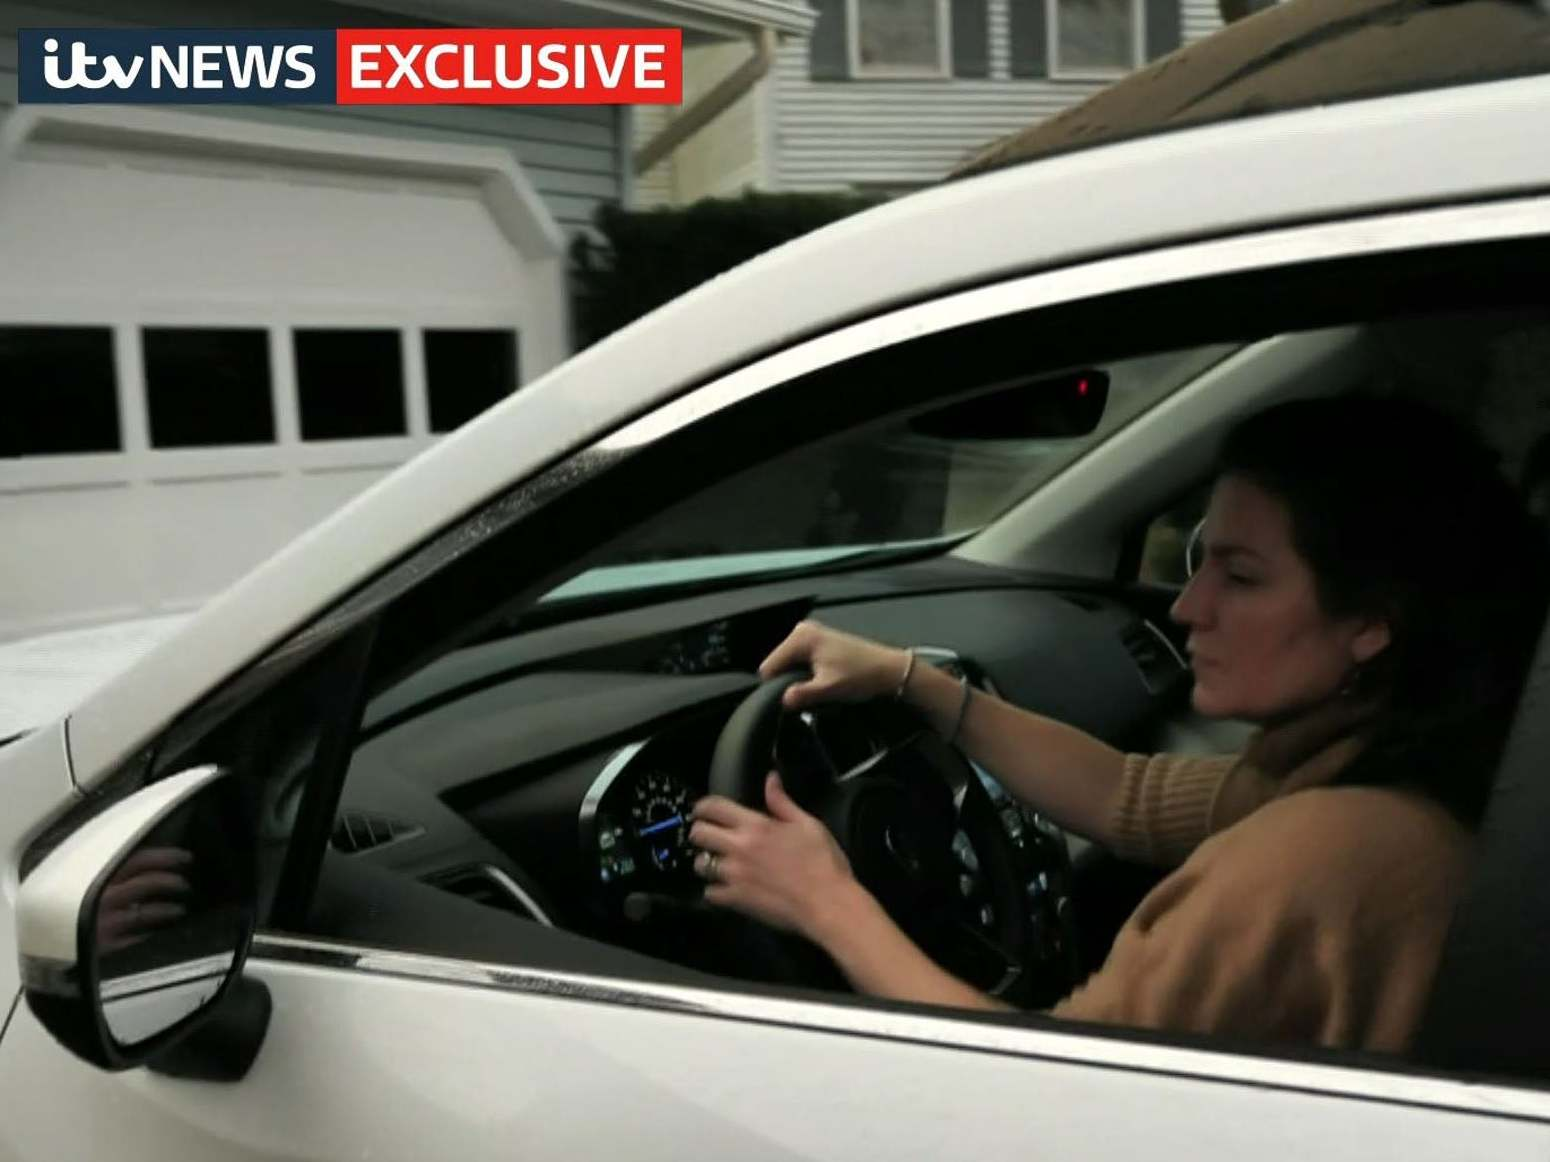 Harry Dunn: Grieving family left 'distraught' after hit-and-run suspect Anne Sacoolas filmed back behind wheel